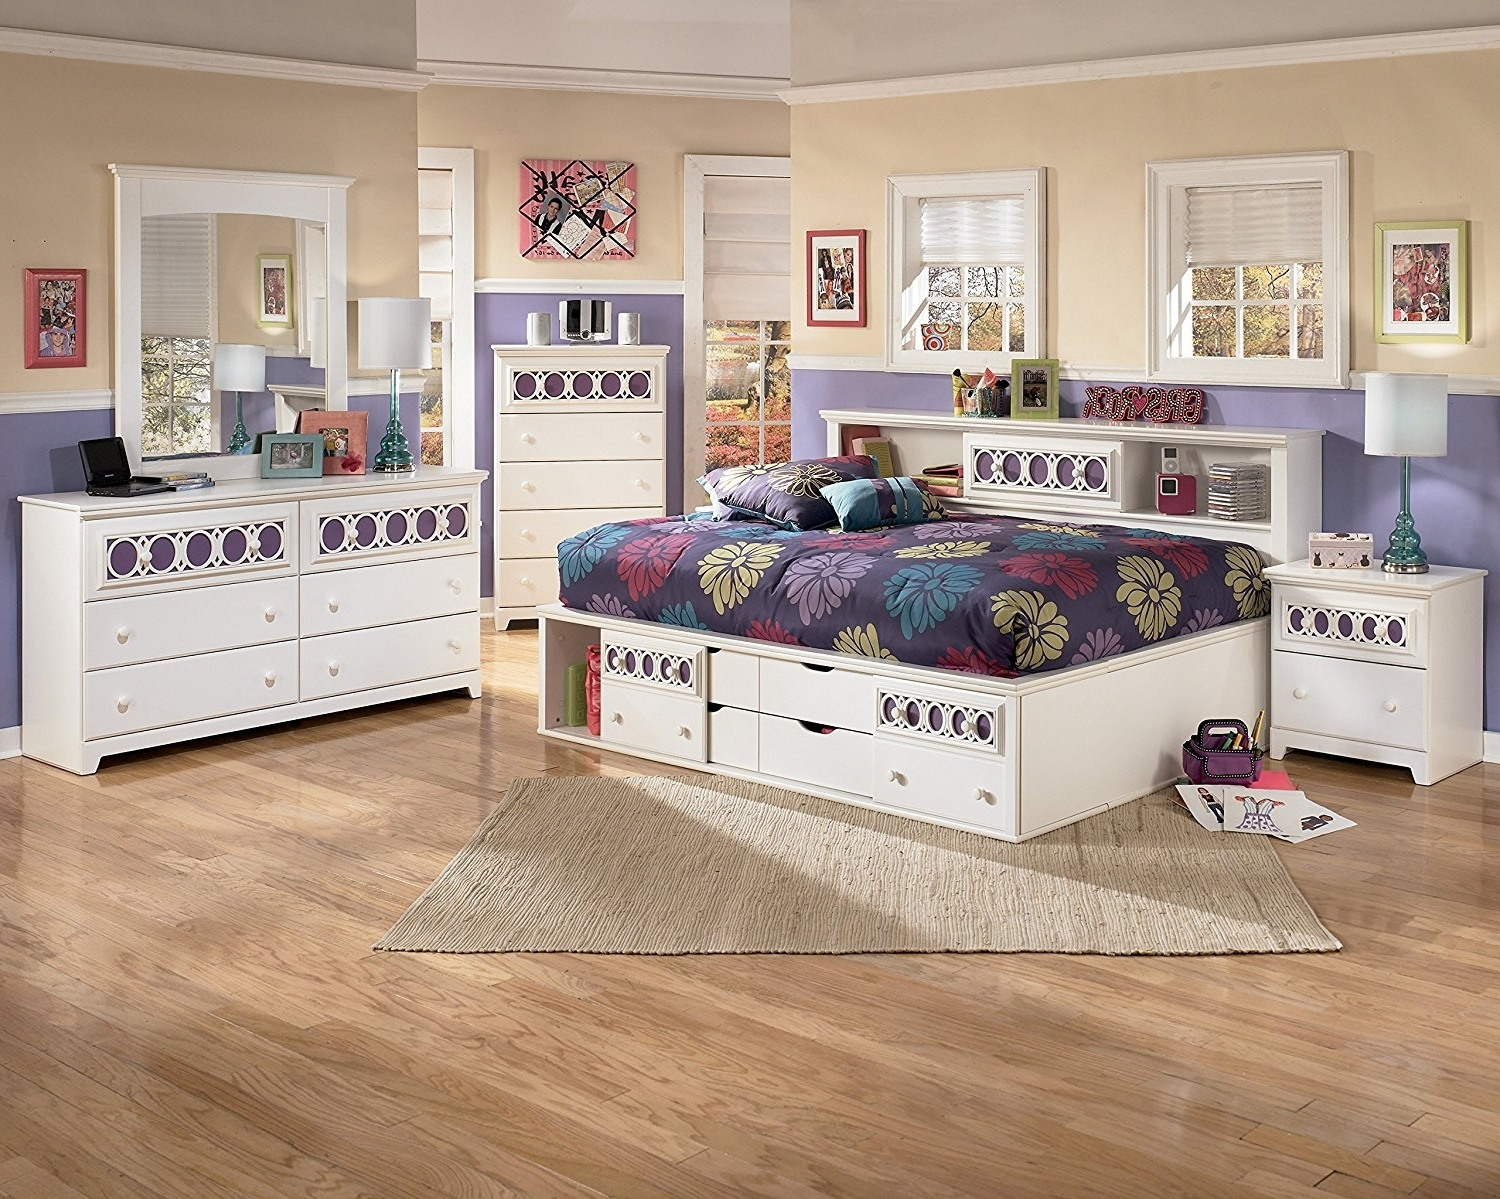 Zayley Full Bed Bookcases For 2017 Amazon: Roundhill Furniture Jura Bookcase Day Bed, Full, White (View 8 of 15)